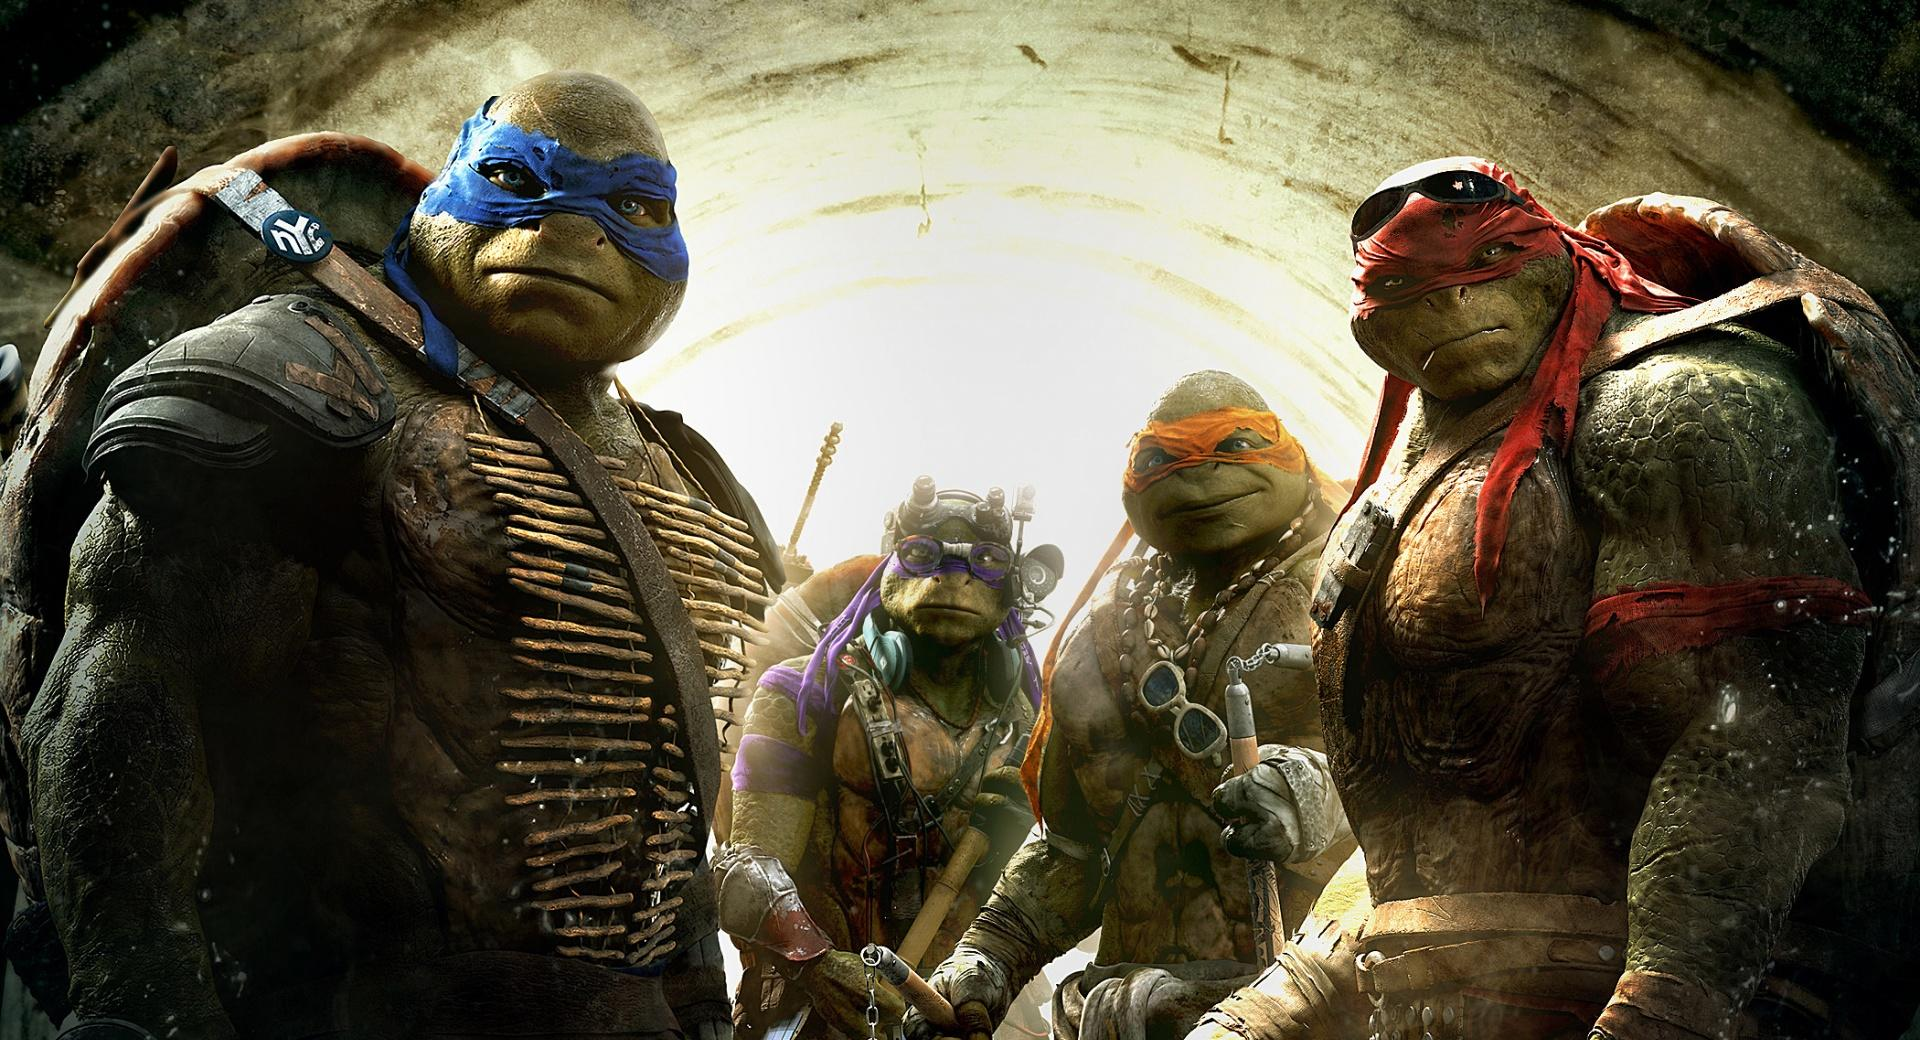 Teenage Mutant Ninja Turtles 2014 Movie wallpapers HD quality